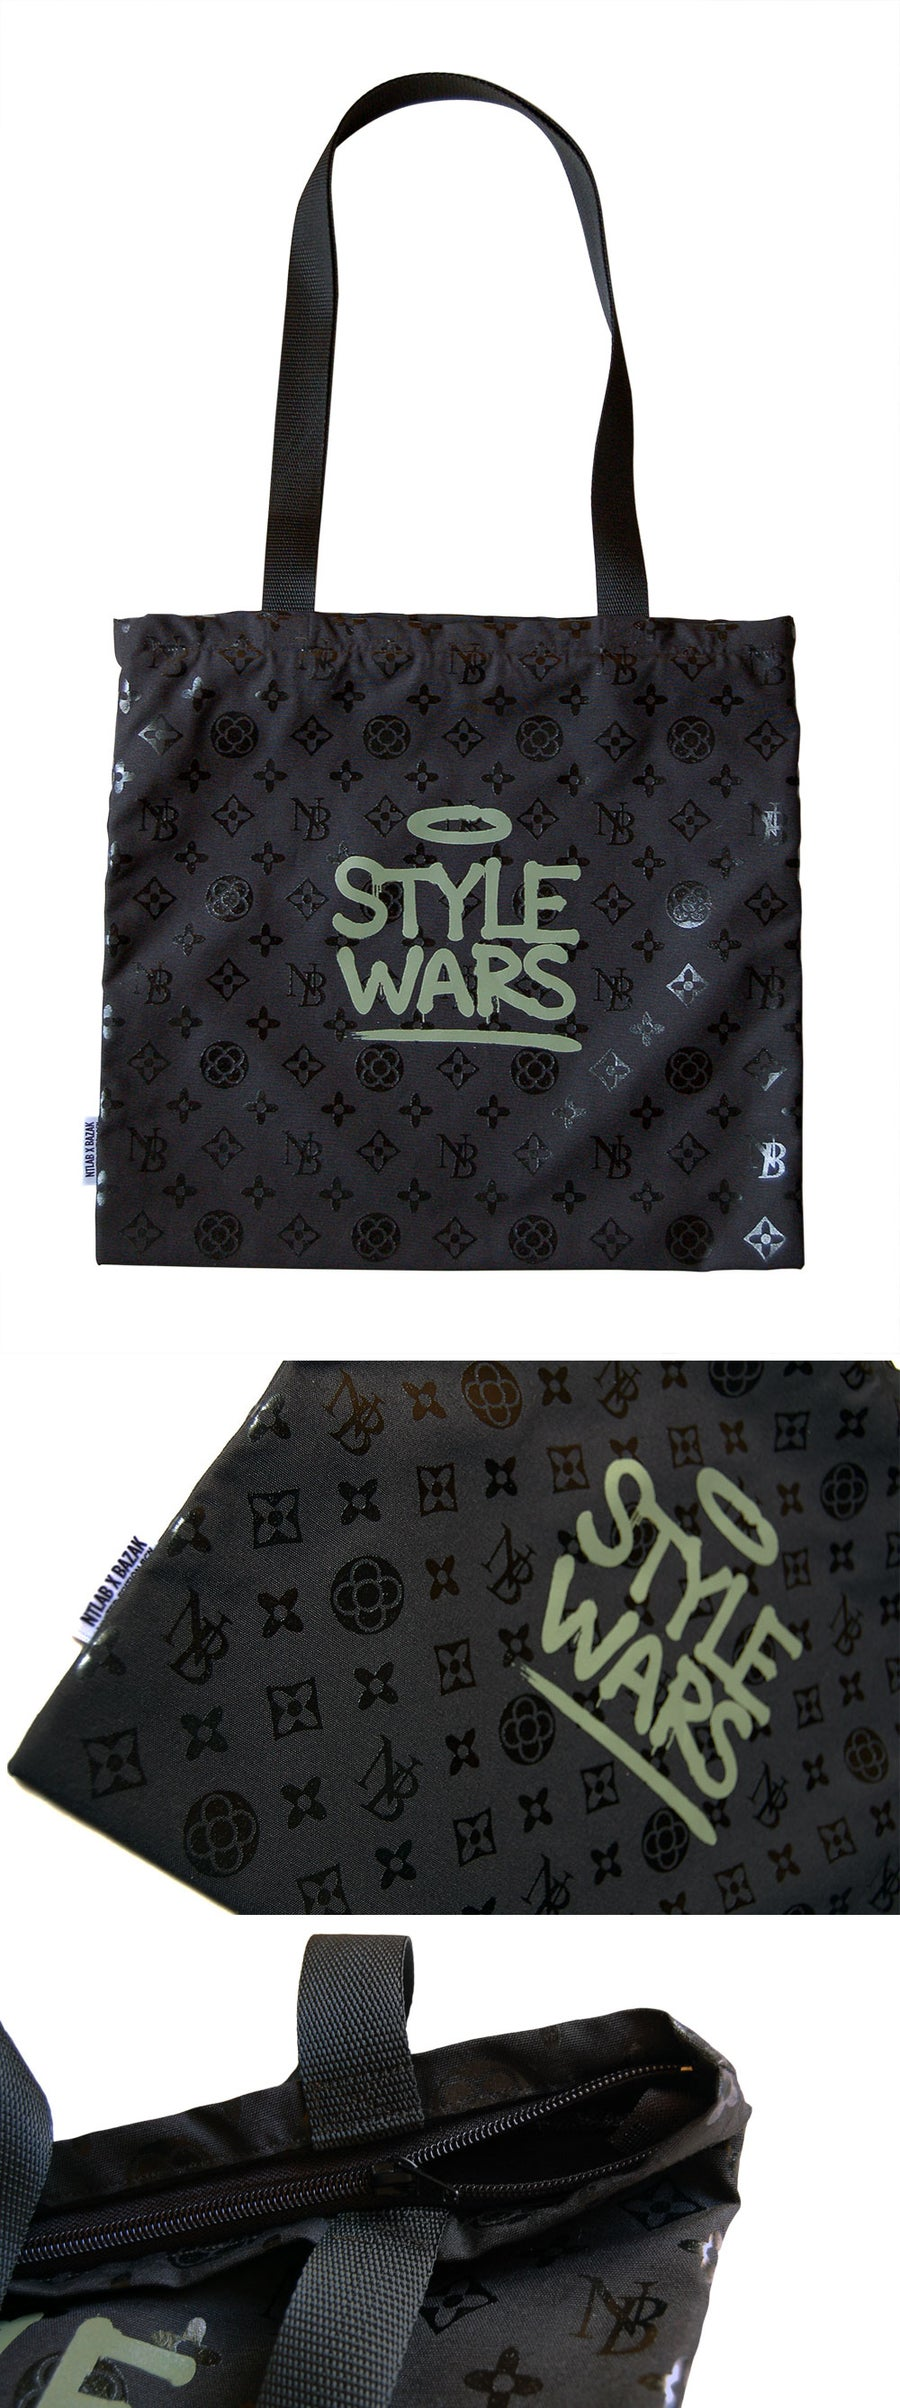 Image of STYLE WARS Exclusive Bag